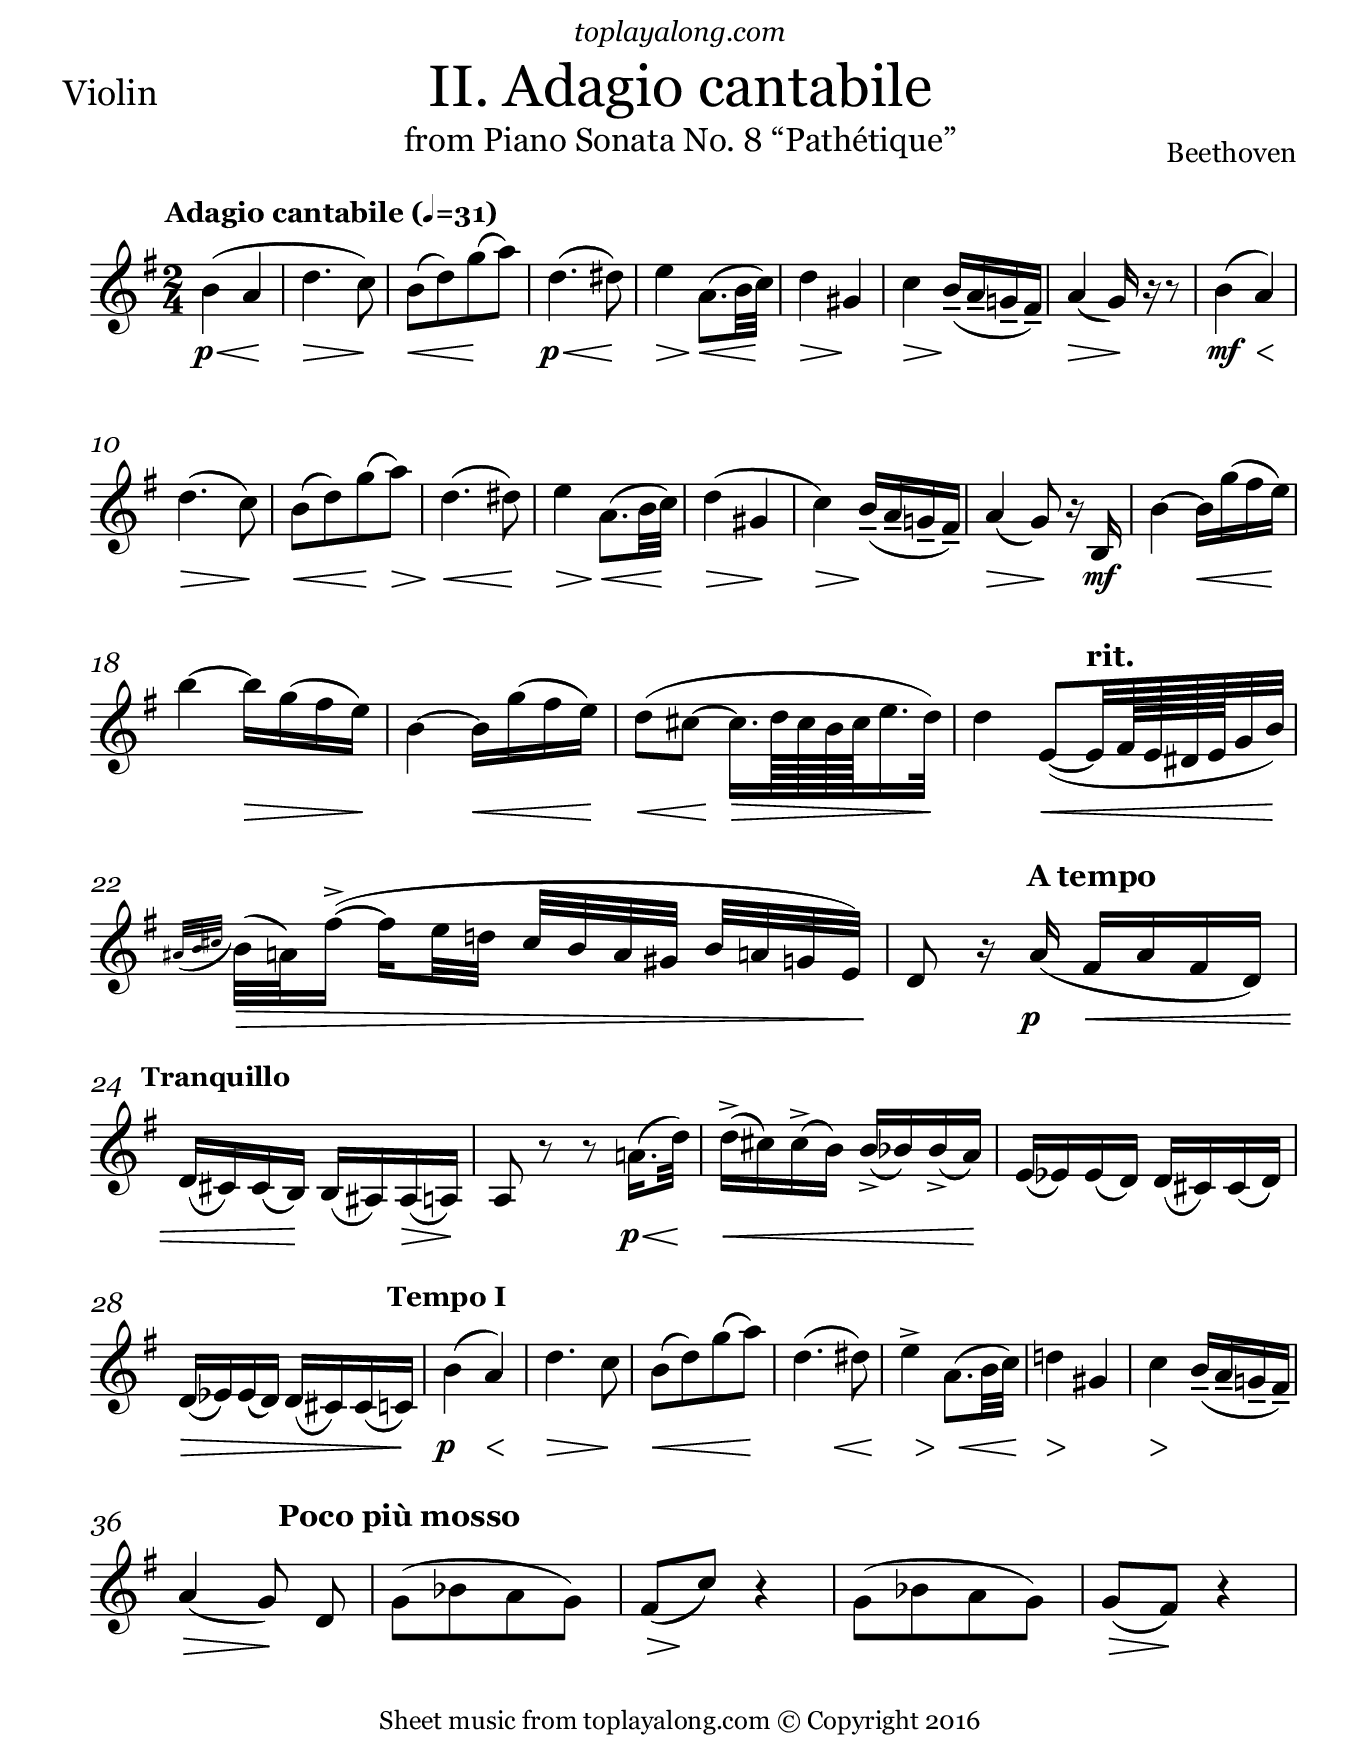 Sonata No. 8 Pathetique (II. Adagio cantabile) by Beethoven. Sheet music for Violin, page 1.